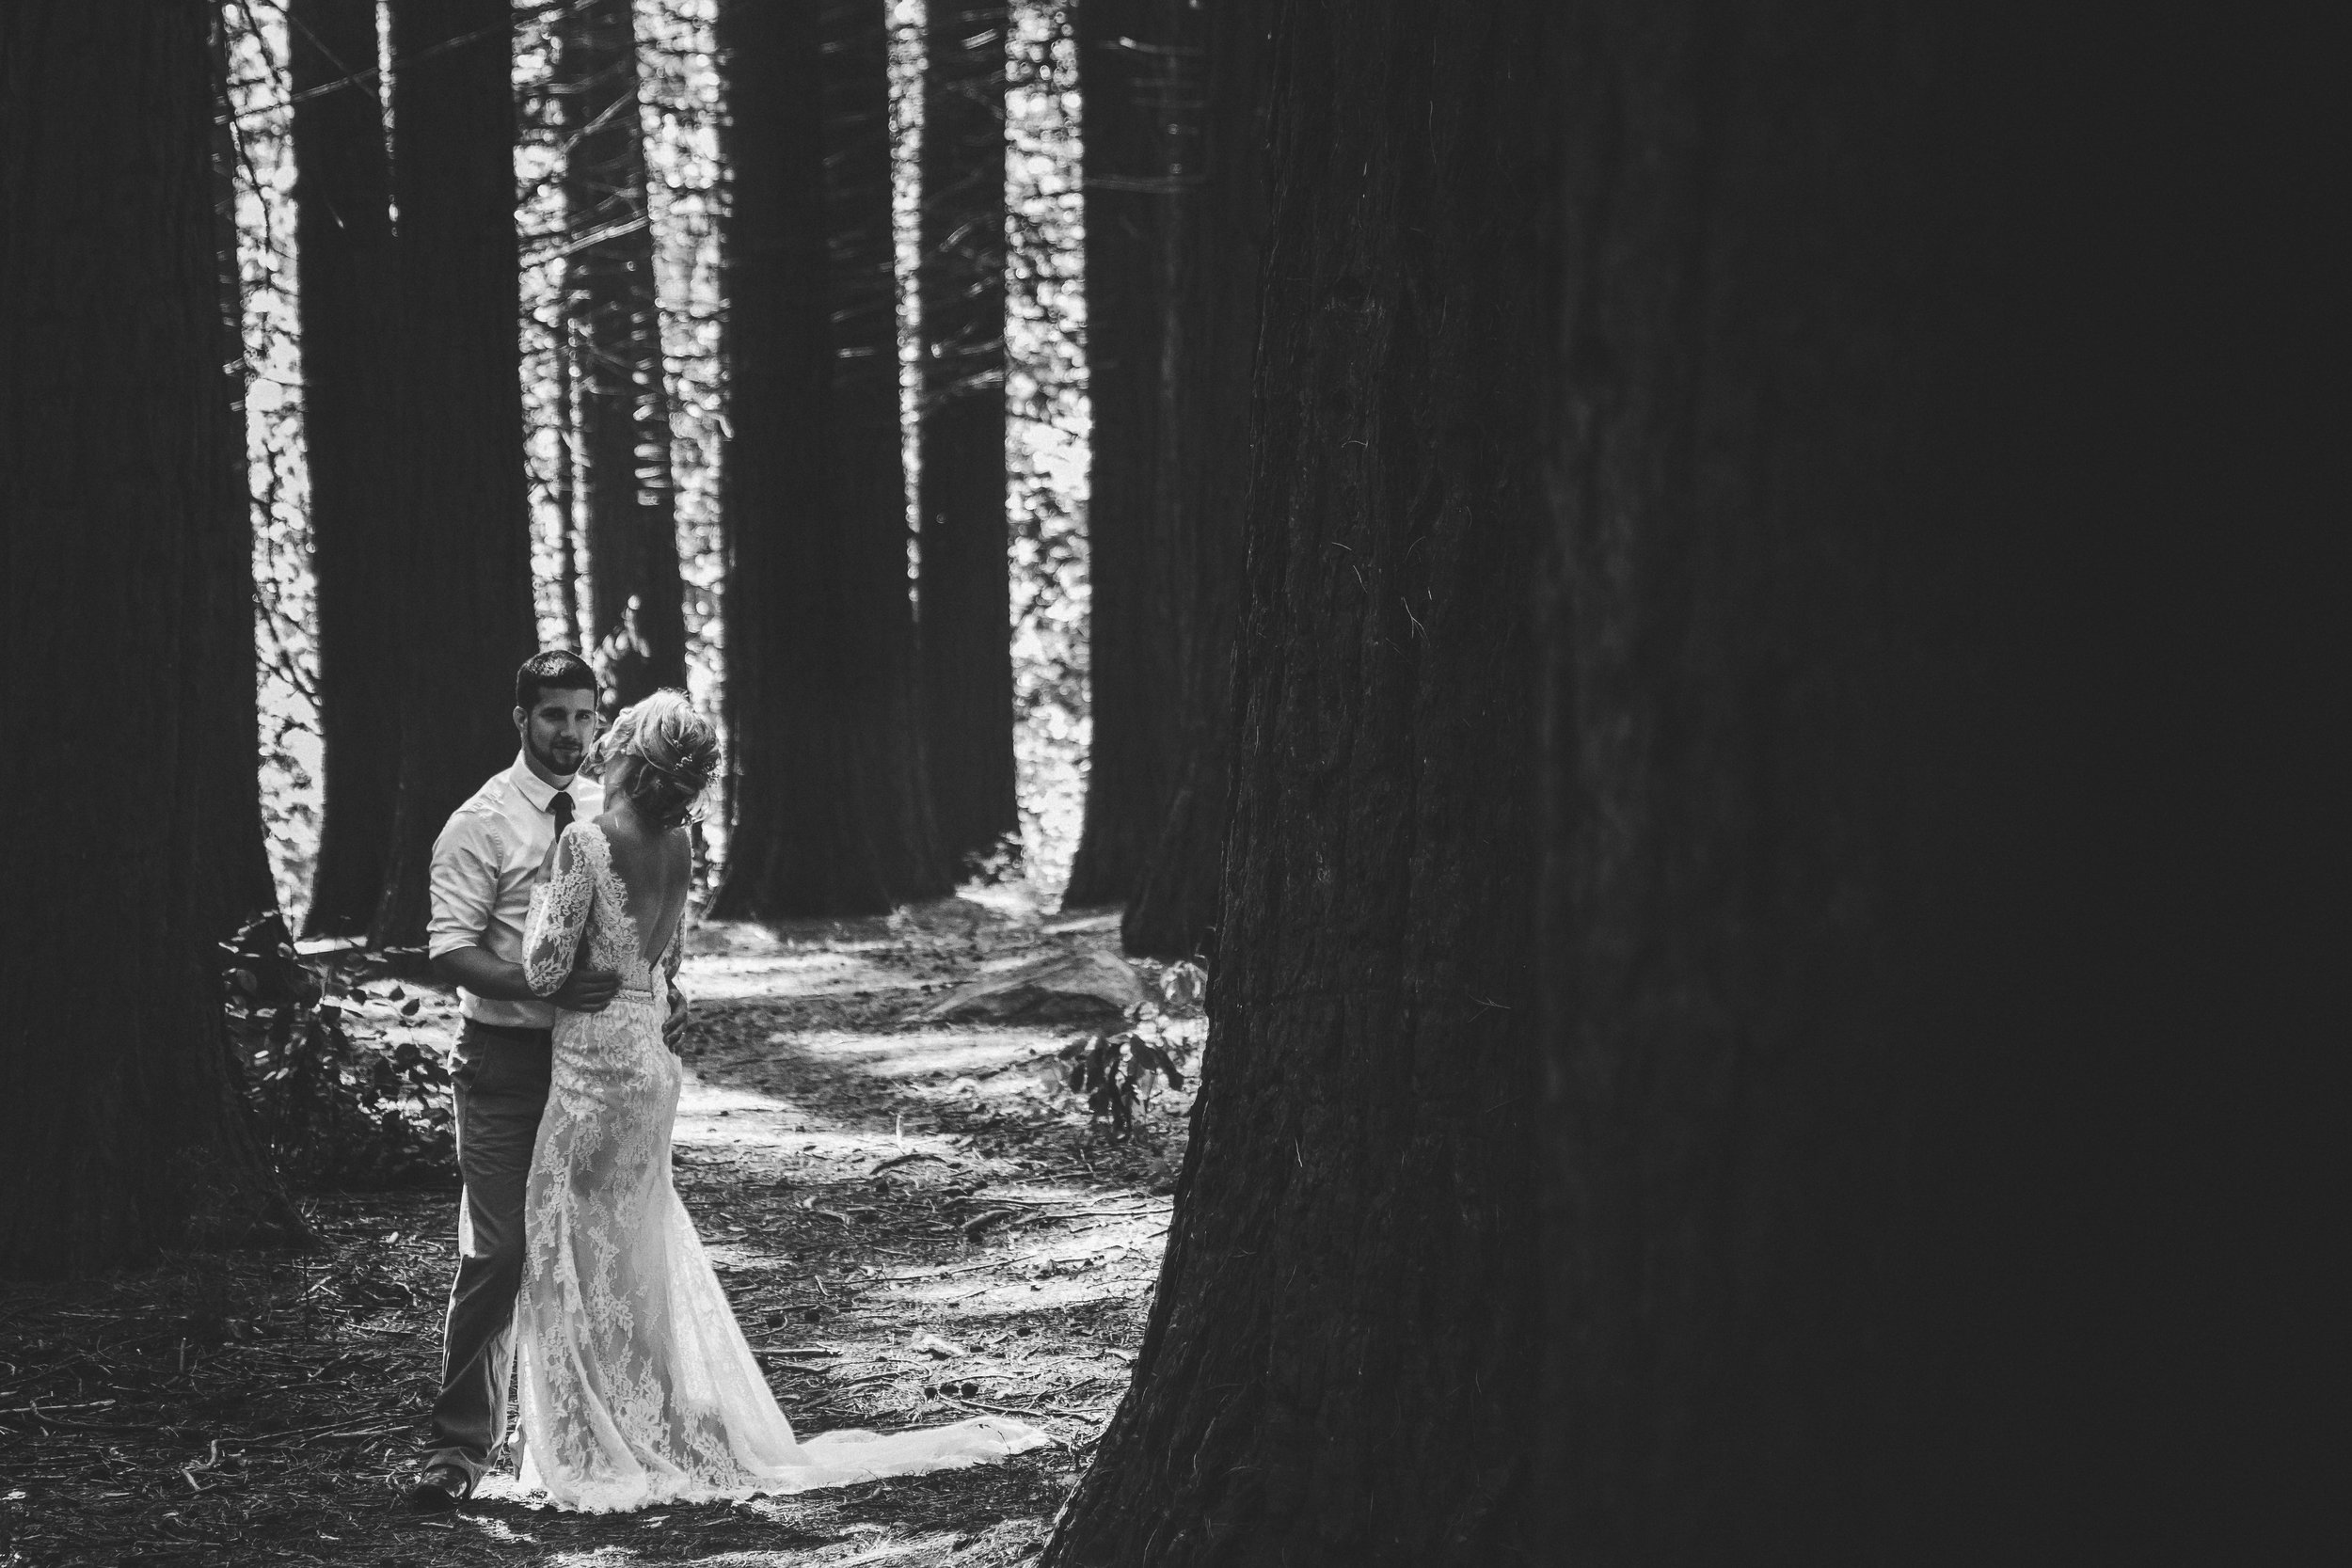 A whimsical styled wedding in the redwood Forest. Featuring a lace sheath gown, wild flowers and a deep connection. Based In Vancouver, BC. Photography By Mimsical Photography |Dress Designer: Calla Blanche | Bridal Boutique: Everything But the Groom | Make up: Jaymie Dekker  #whitewedding #casualwedding #bohemianwedding #woodlandwedding #lacegown #sheathgown #white #whitebouquet #wildflowerbouquet #messyupdo #relaxedupdo #redlips #babysbreath #dahlia #wedding #bride #groom #bridalportrait #emotionalphotography #connectionphotography #woodland #redwood #trees #musthave #moodywedding #vancouverwedding #vancouverbc #weddingdress #weddinginspo #bridalinspo #beards #beardedgroom